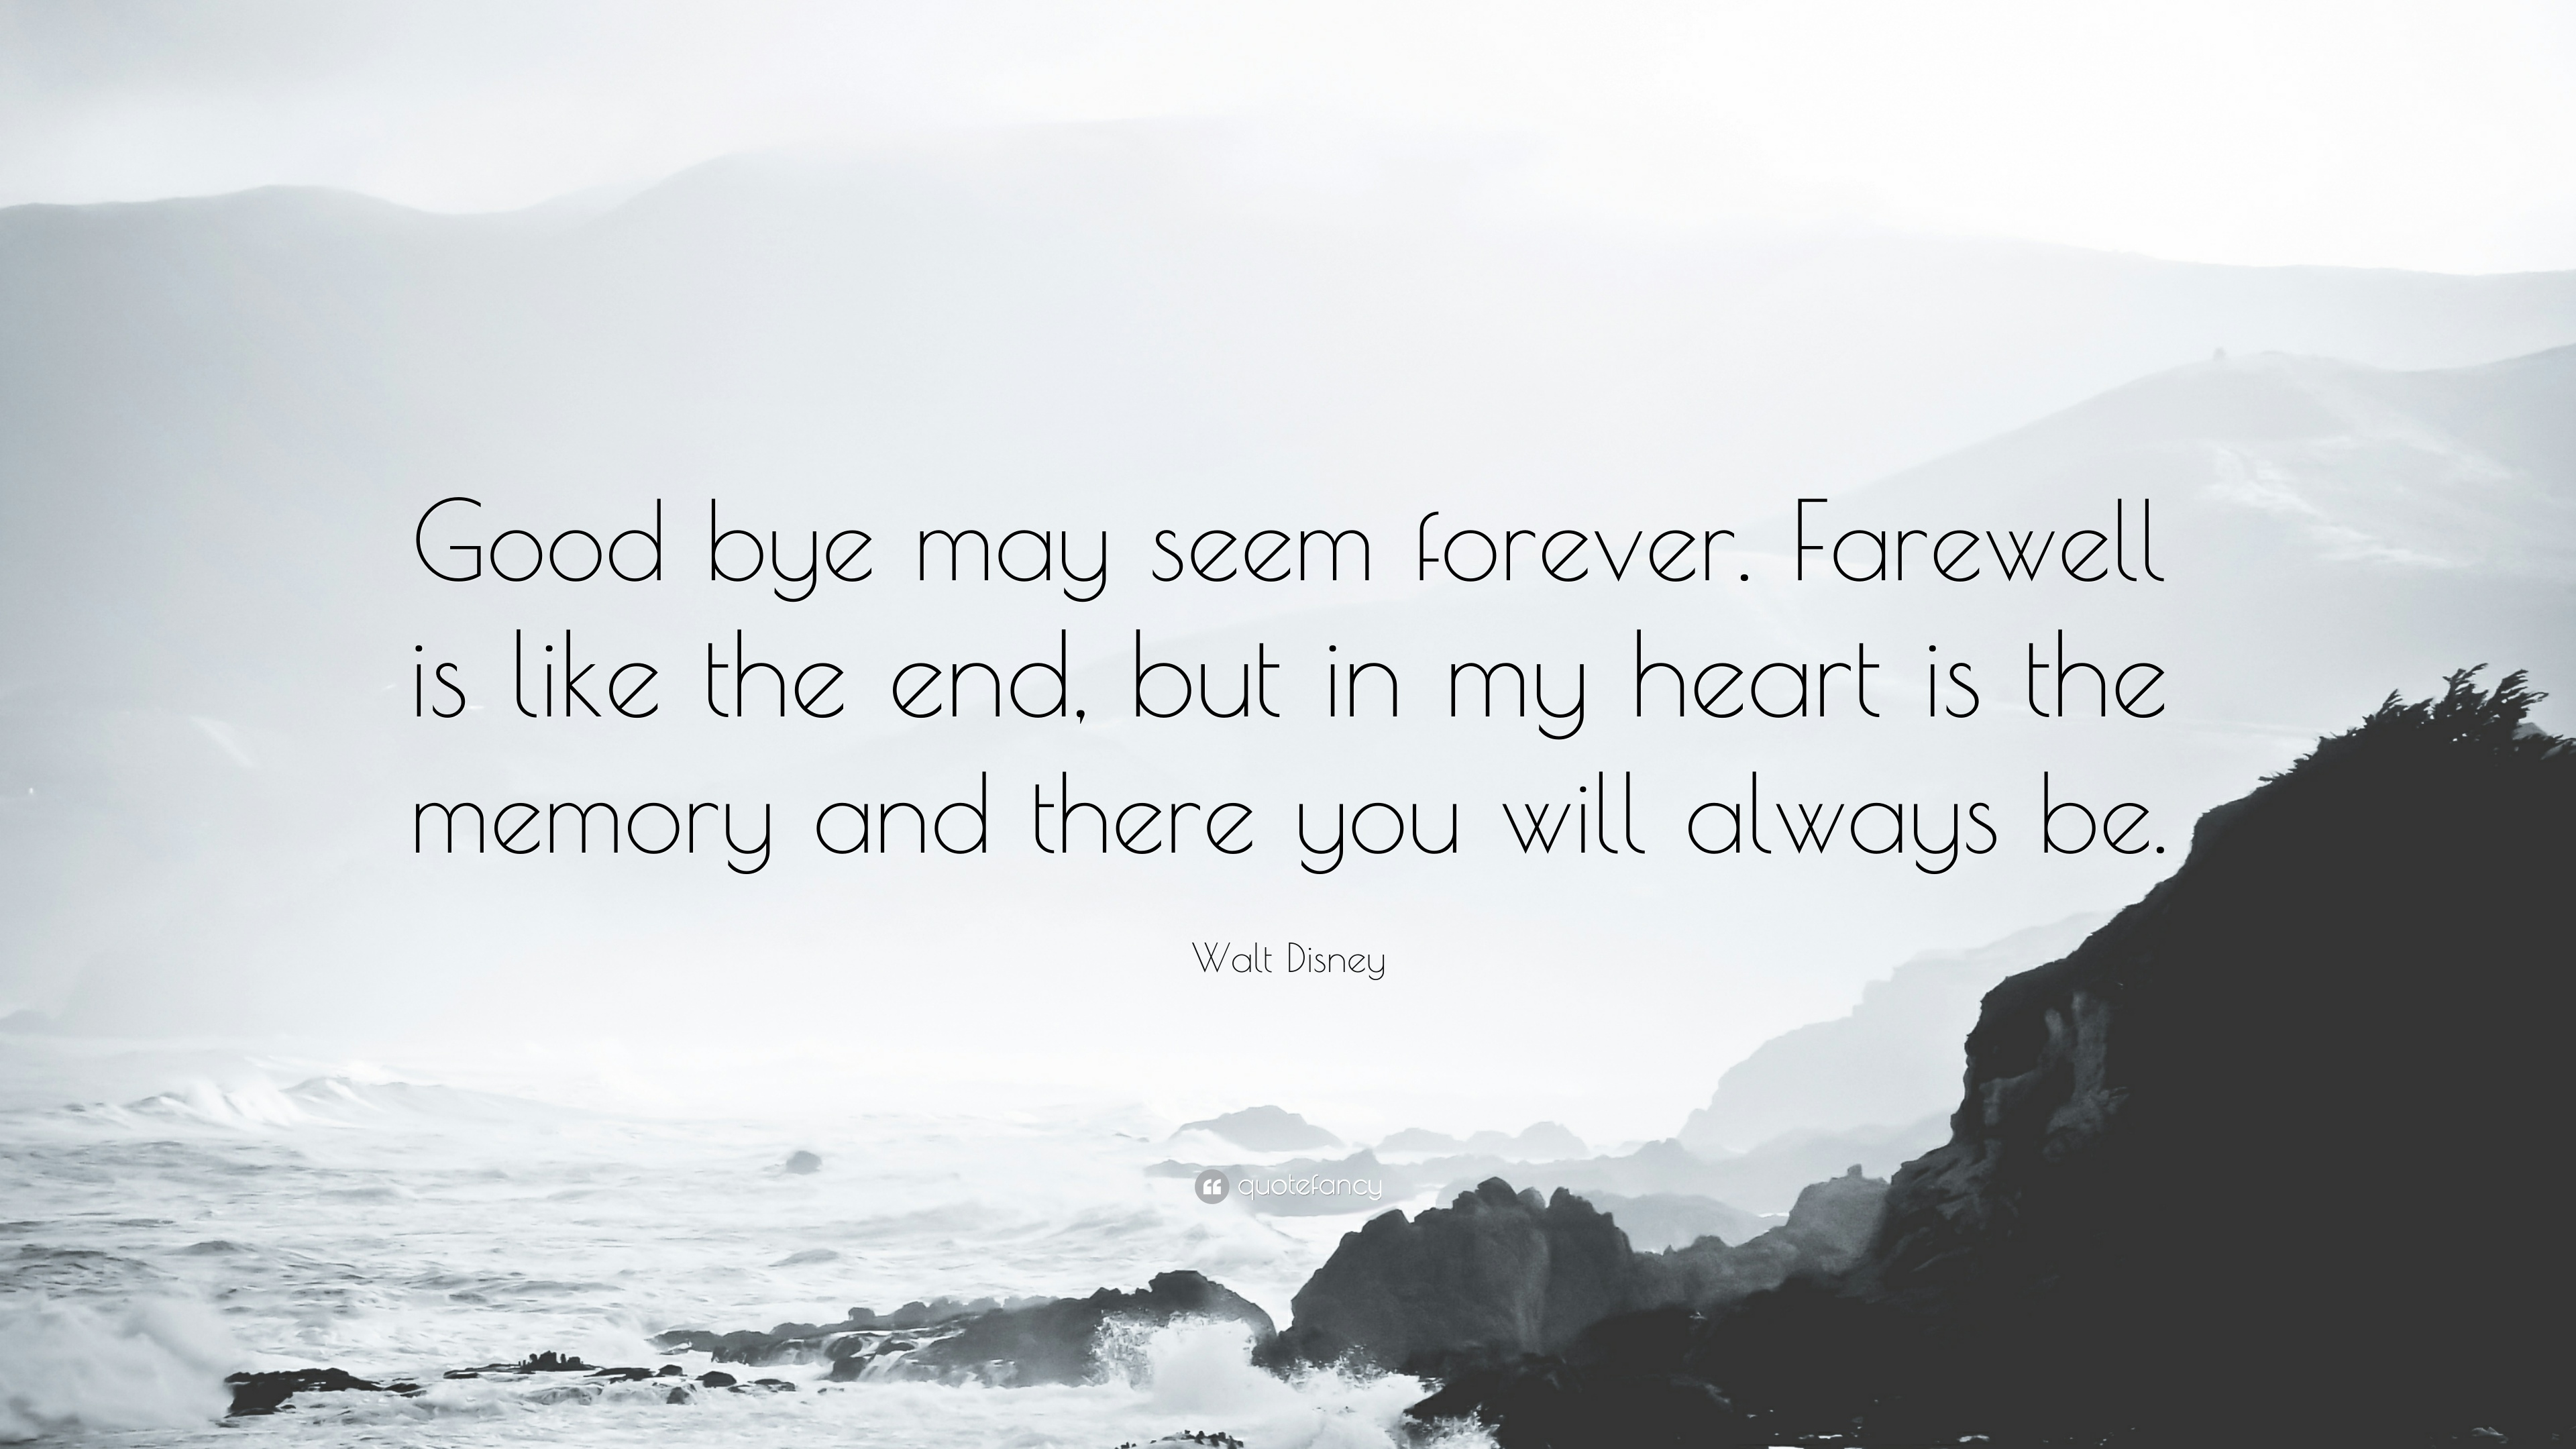 Attractive Goodbye Quotes: U201cGood Bye May Seem Forever. Farewell Is Like The End,